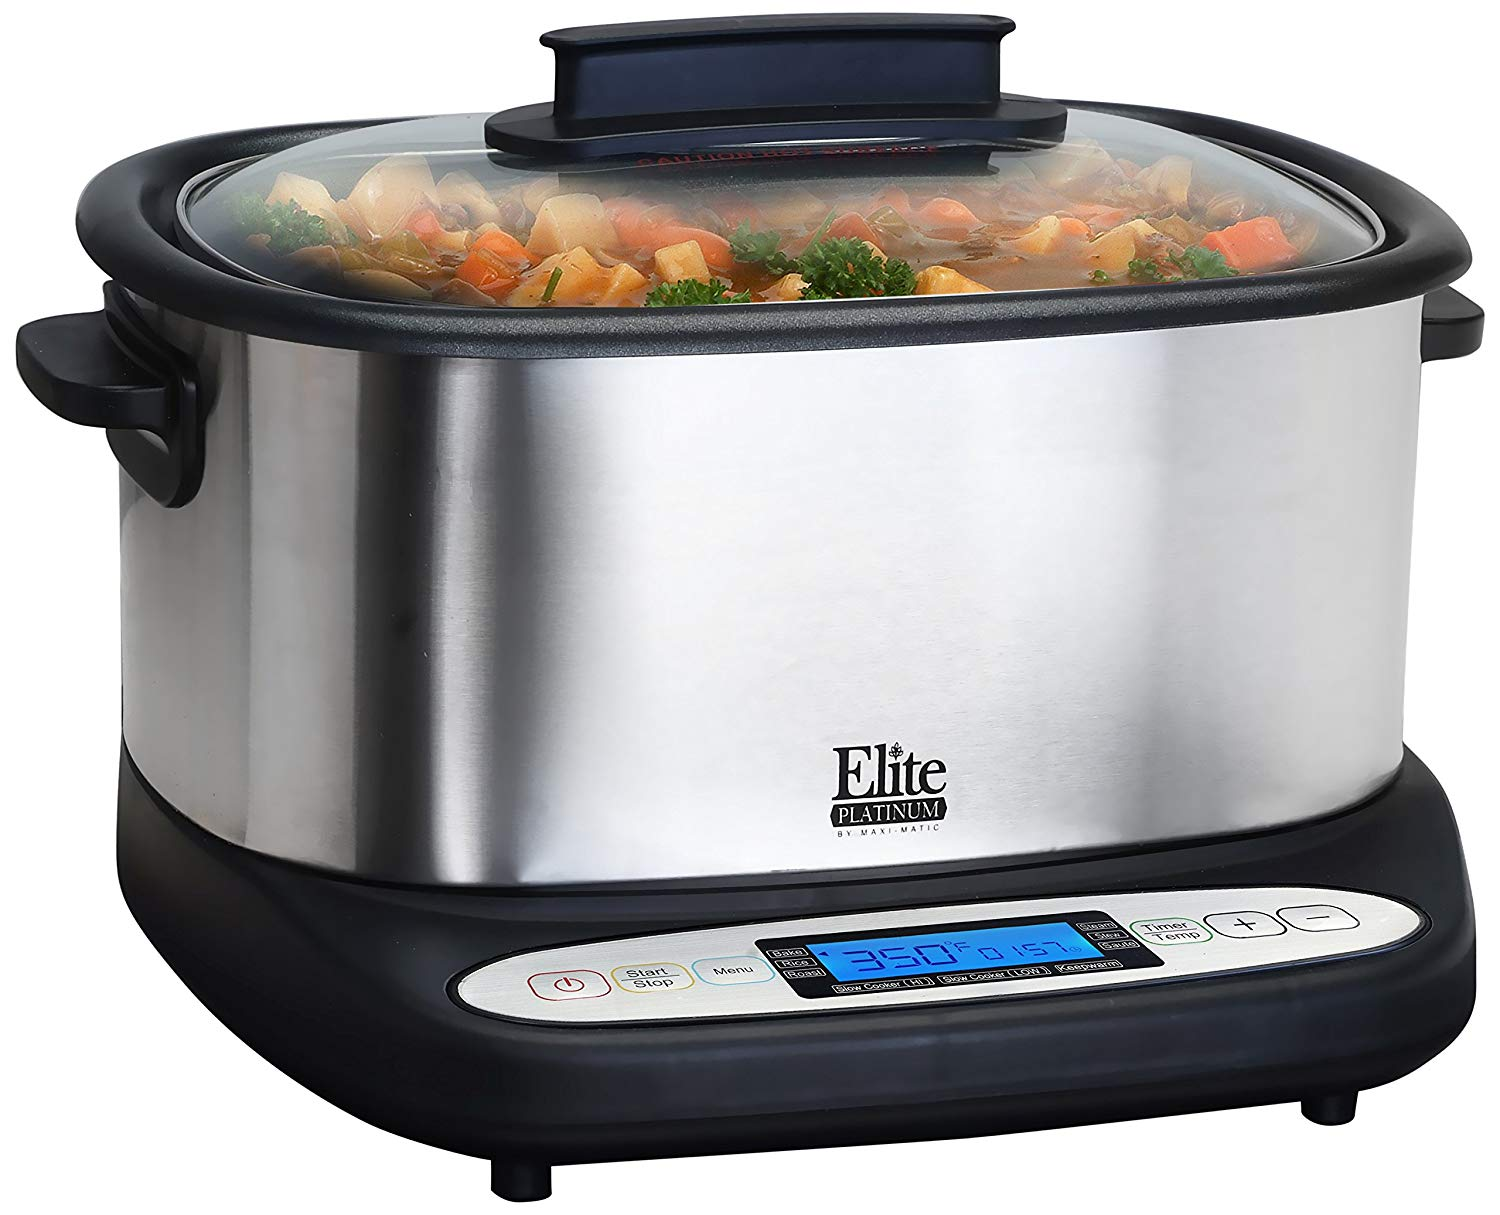 Elite Platinum MST-6805 Maxi-Matic 6 Quart 7-in-1 Infinity Non-Stick Multi-Cooker, Black